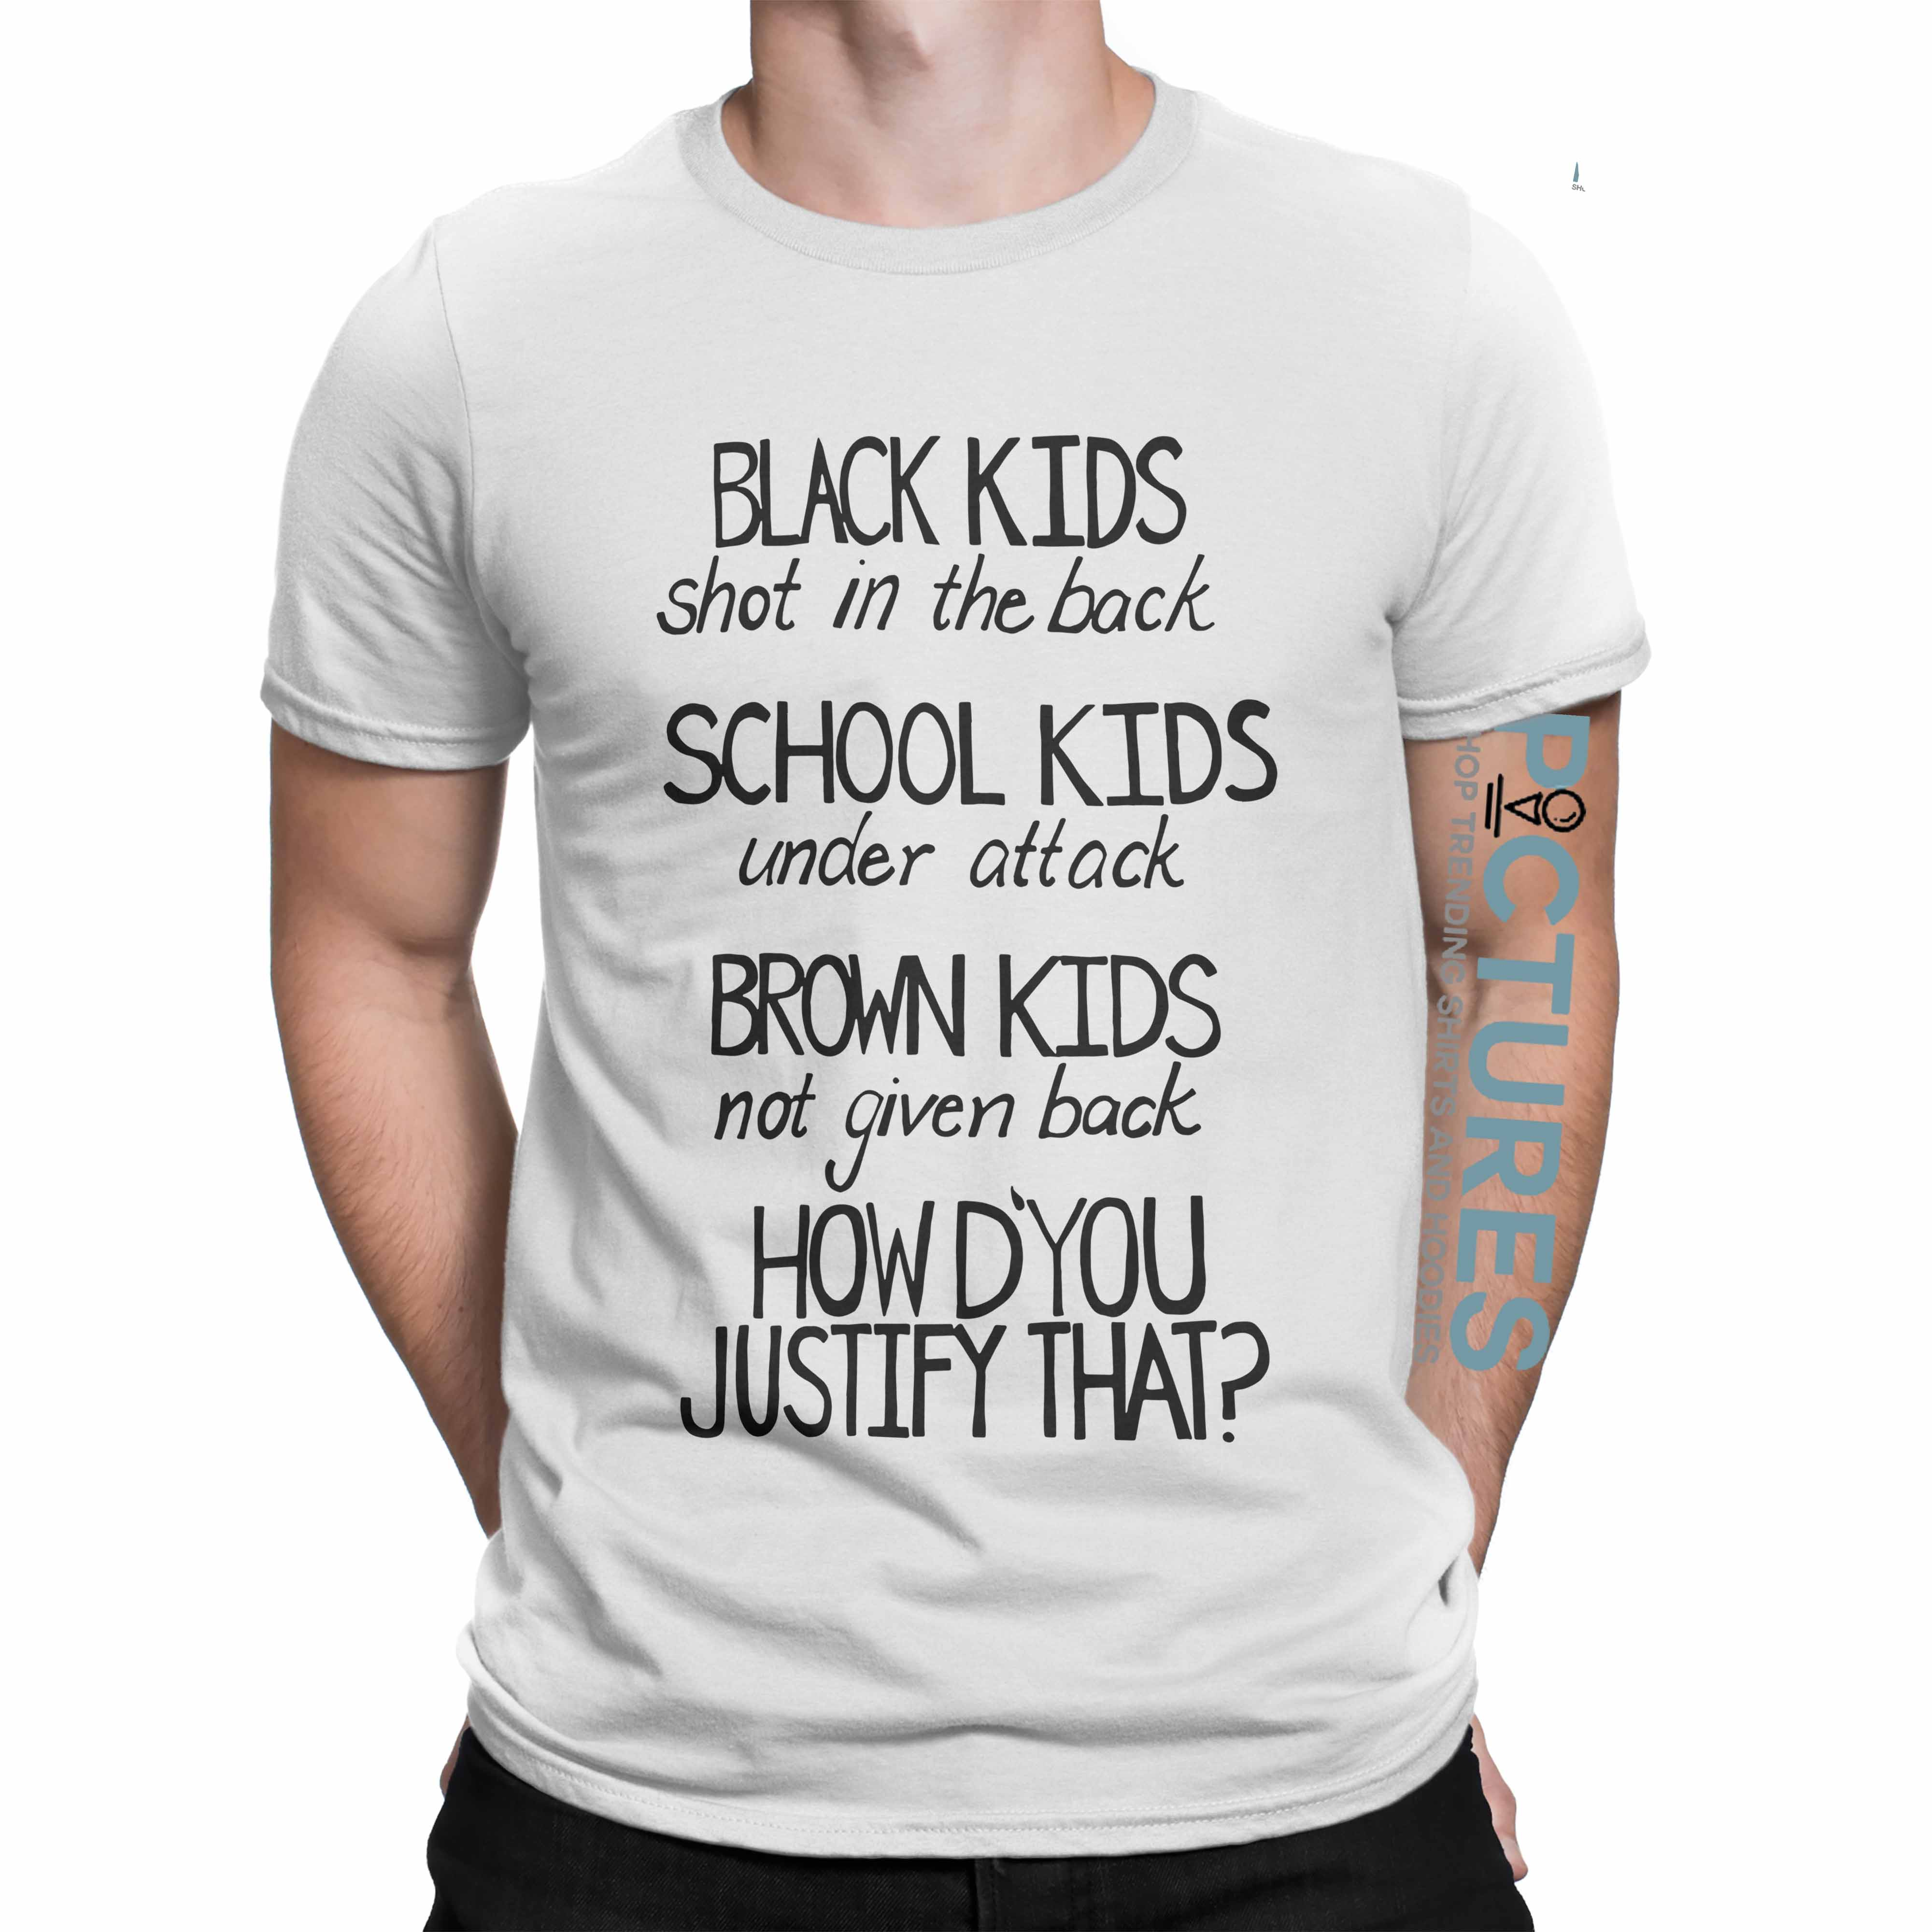 Black kids shot in the back School kids under attack how to justify that shirt